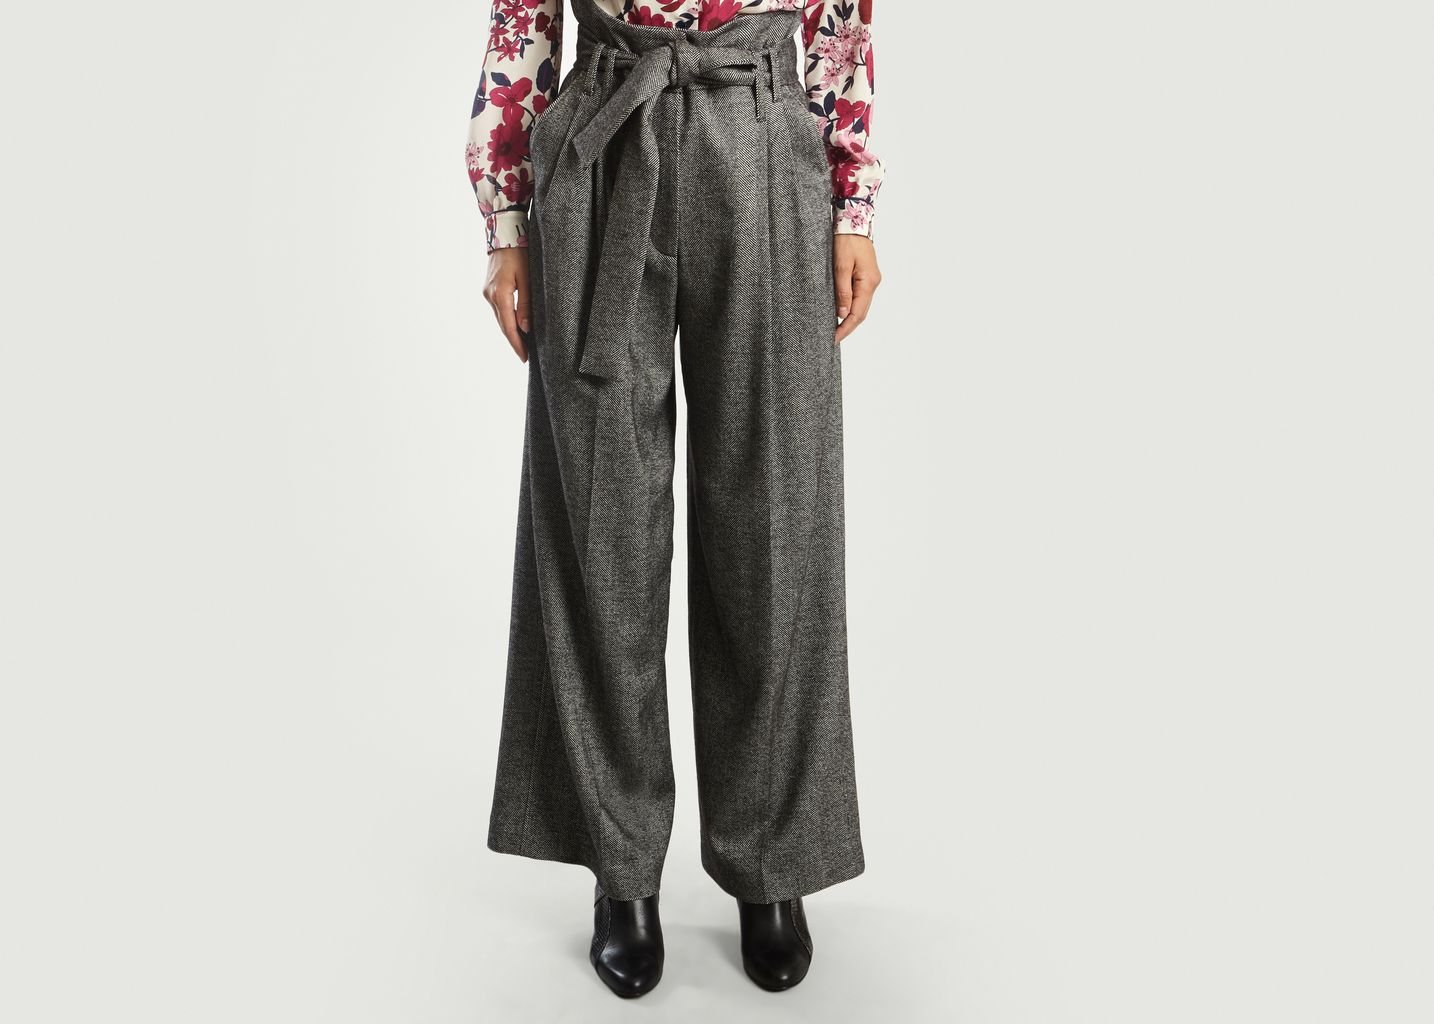 Chevron Large Trousers - Tara Jarmon